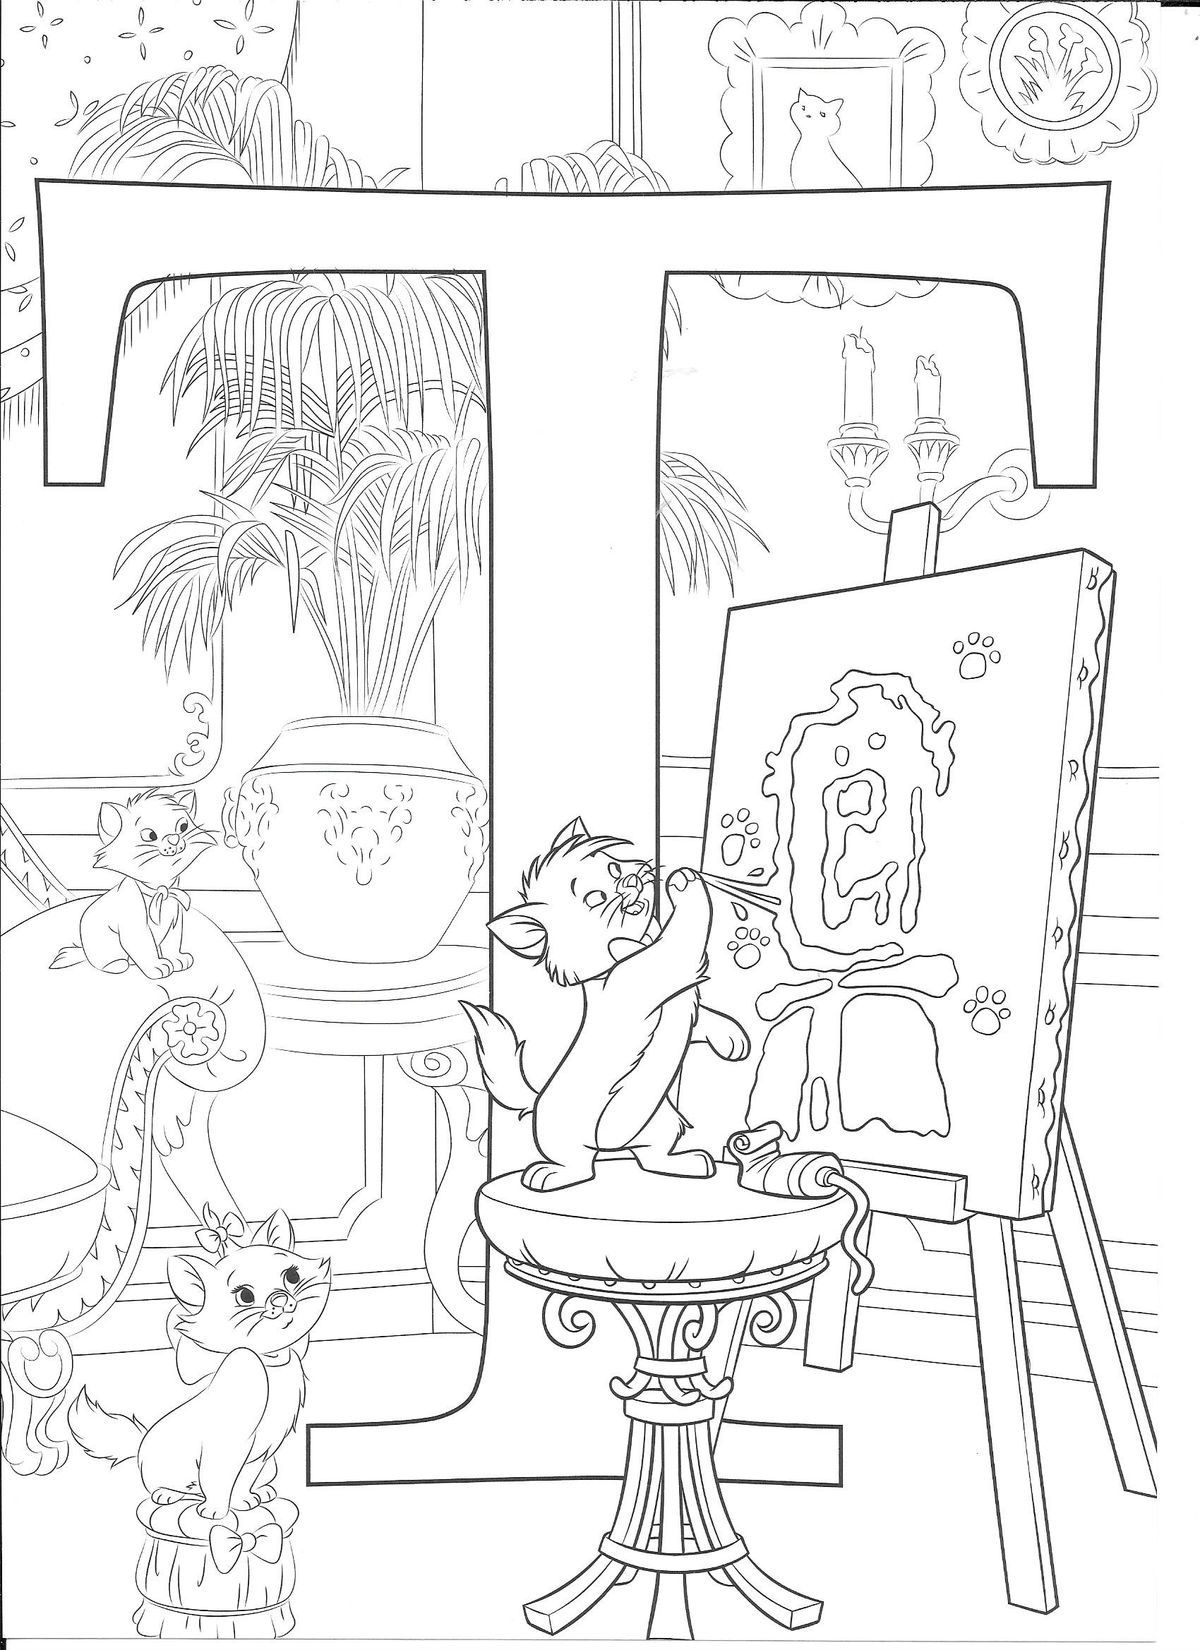 Pin by Mini on Alphabet Coloring Sheets | Abc coloring ...